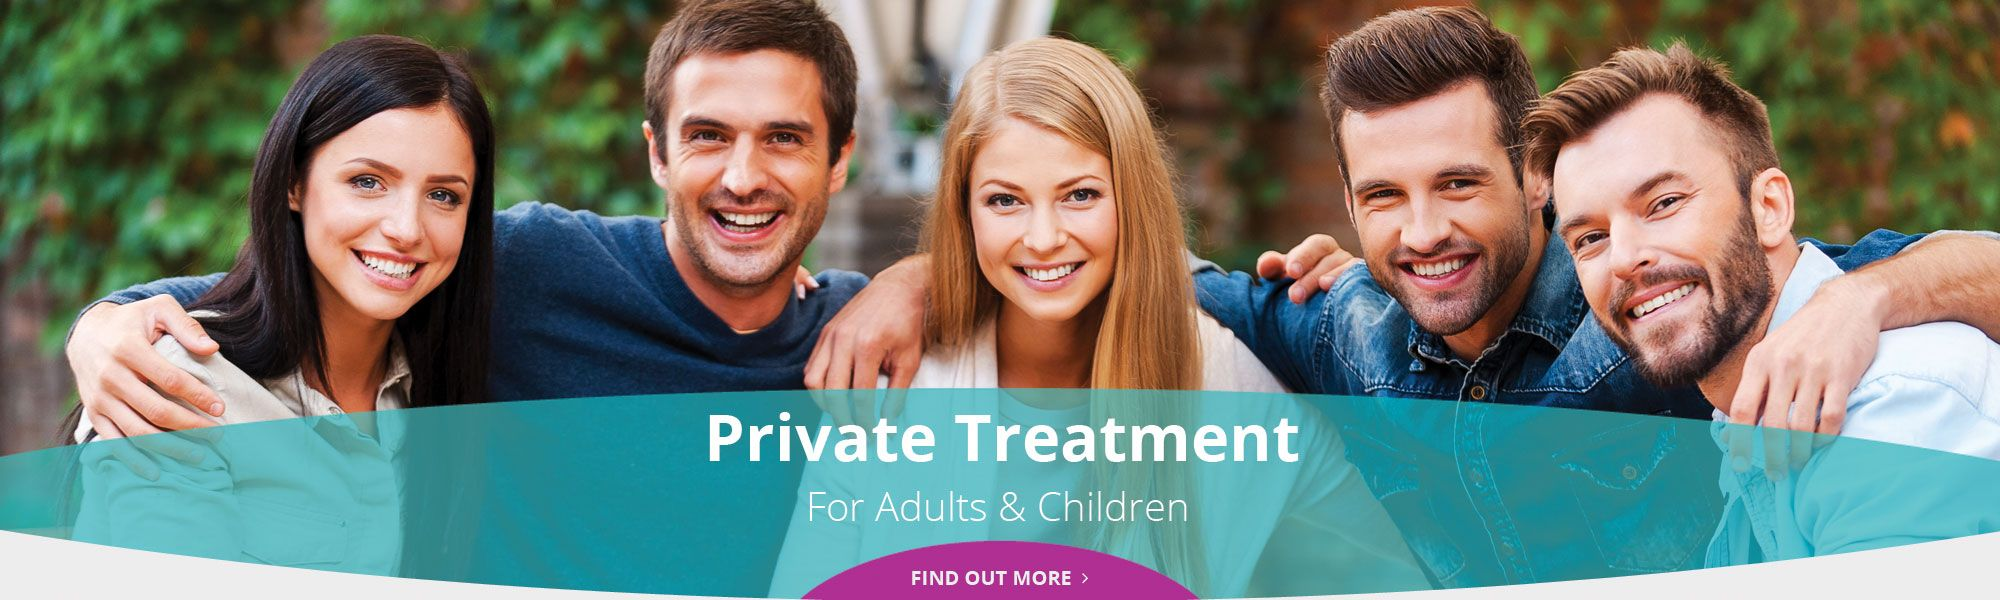 Private Treatment for Adults & Children - Find out more